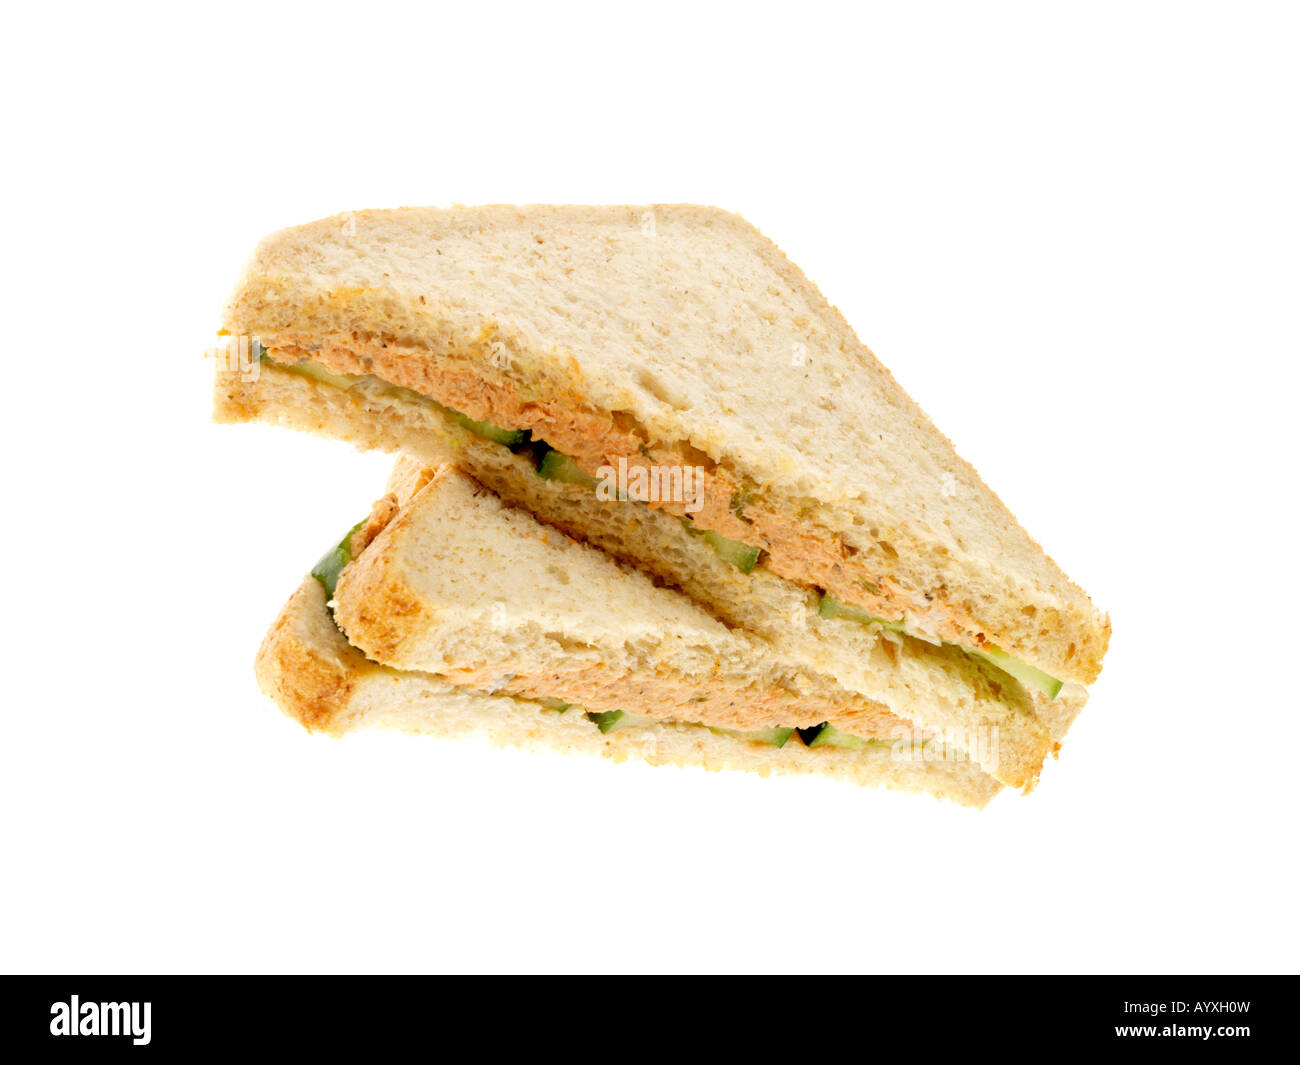 Salmon and Cucumber Sandwich - Stock Image